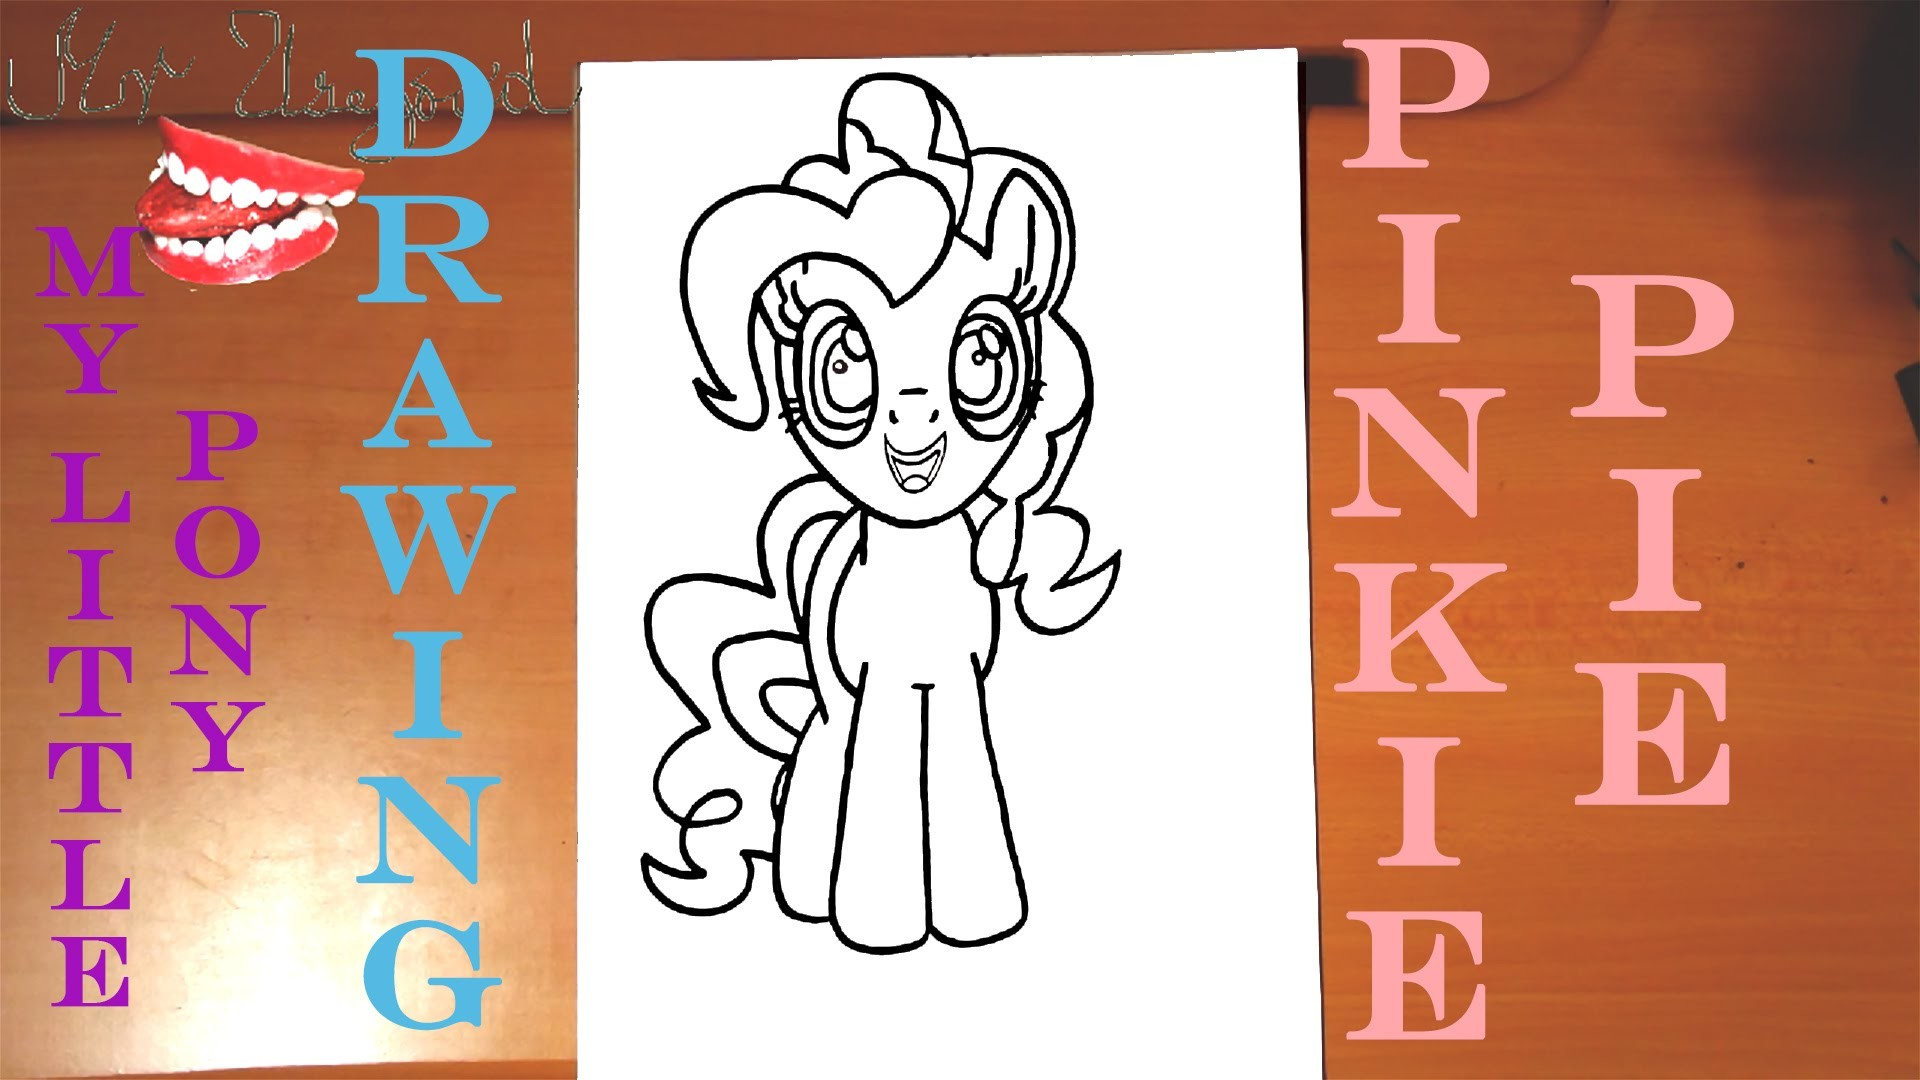 How to draw PINKIE PIE from MY LITTLE PONY Easy, draw easy stuff but cool on paper, SPEED ART